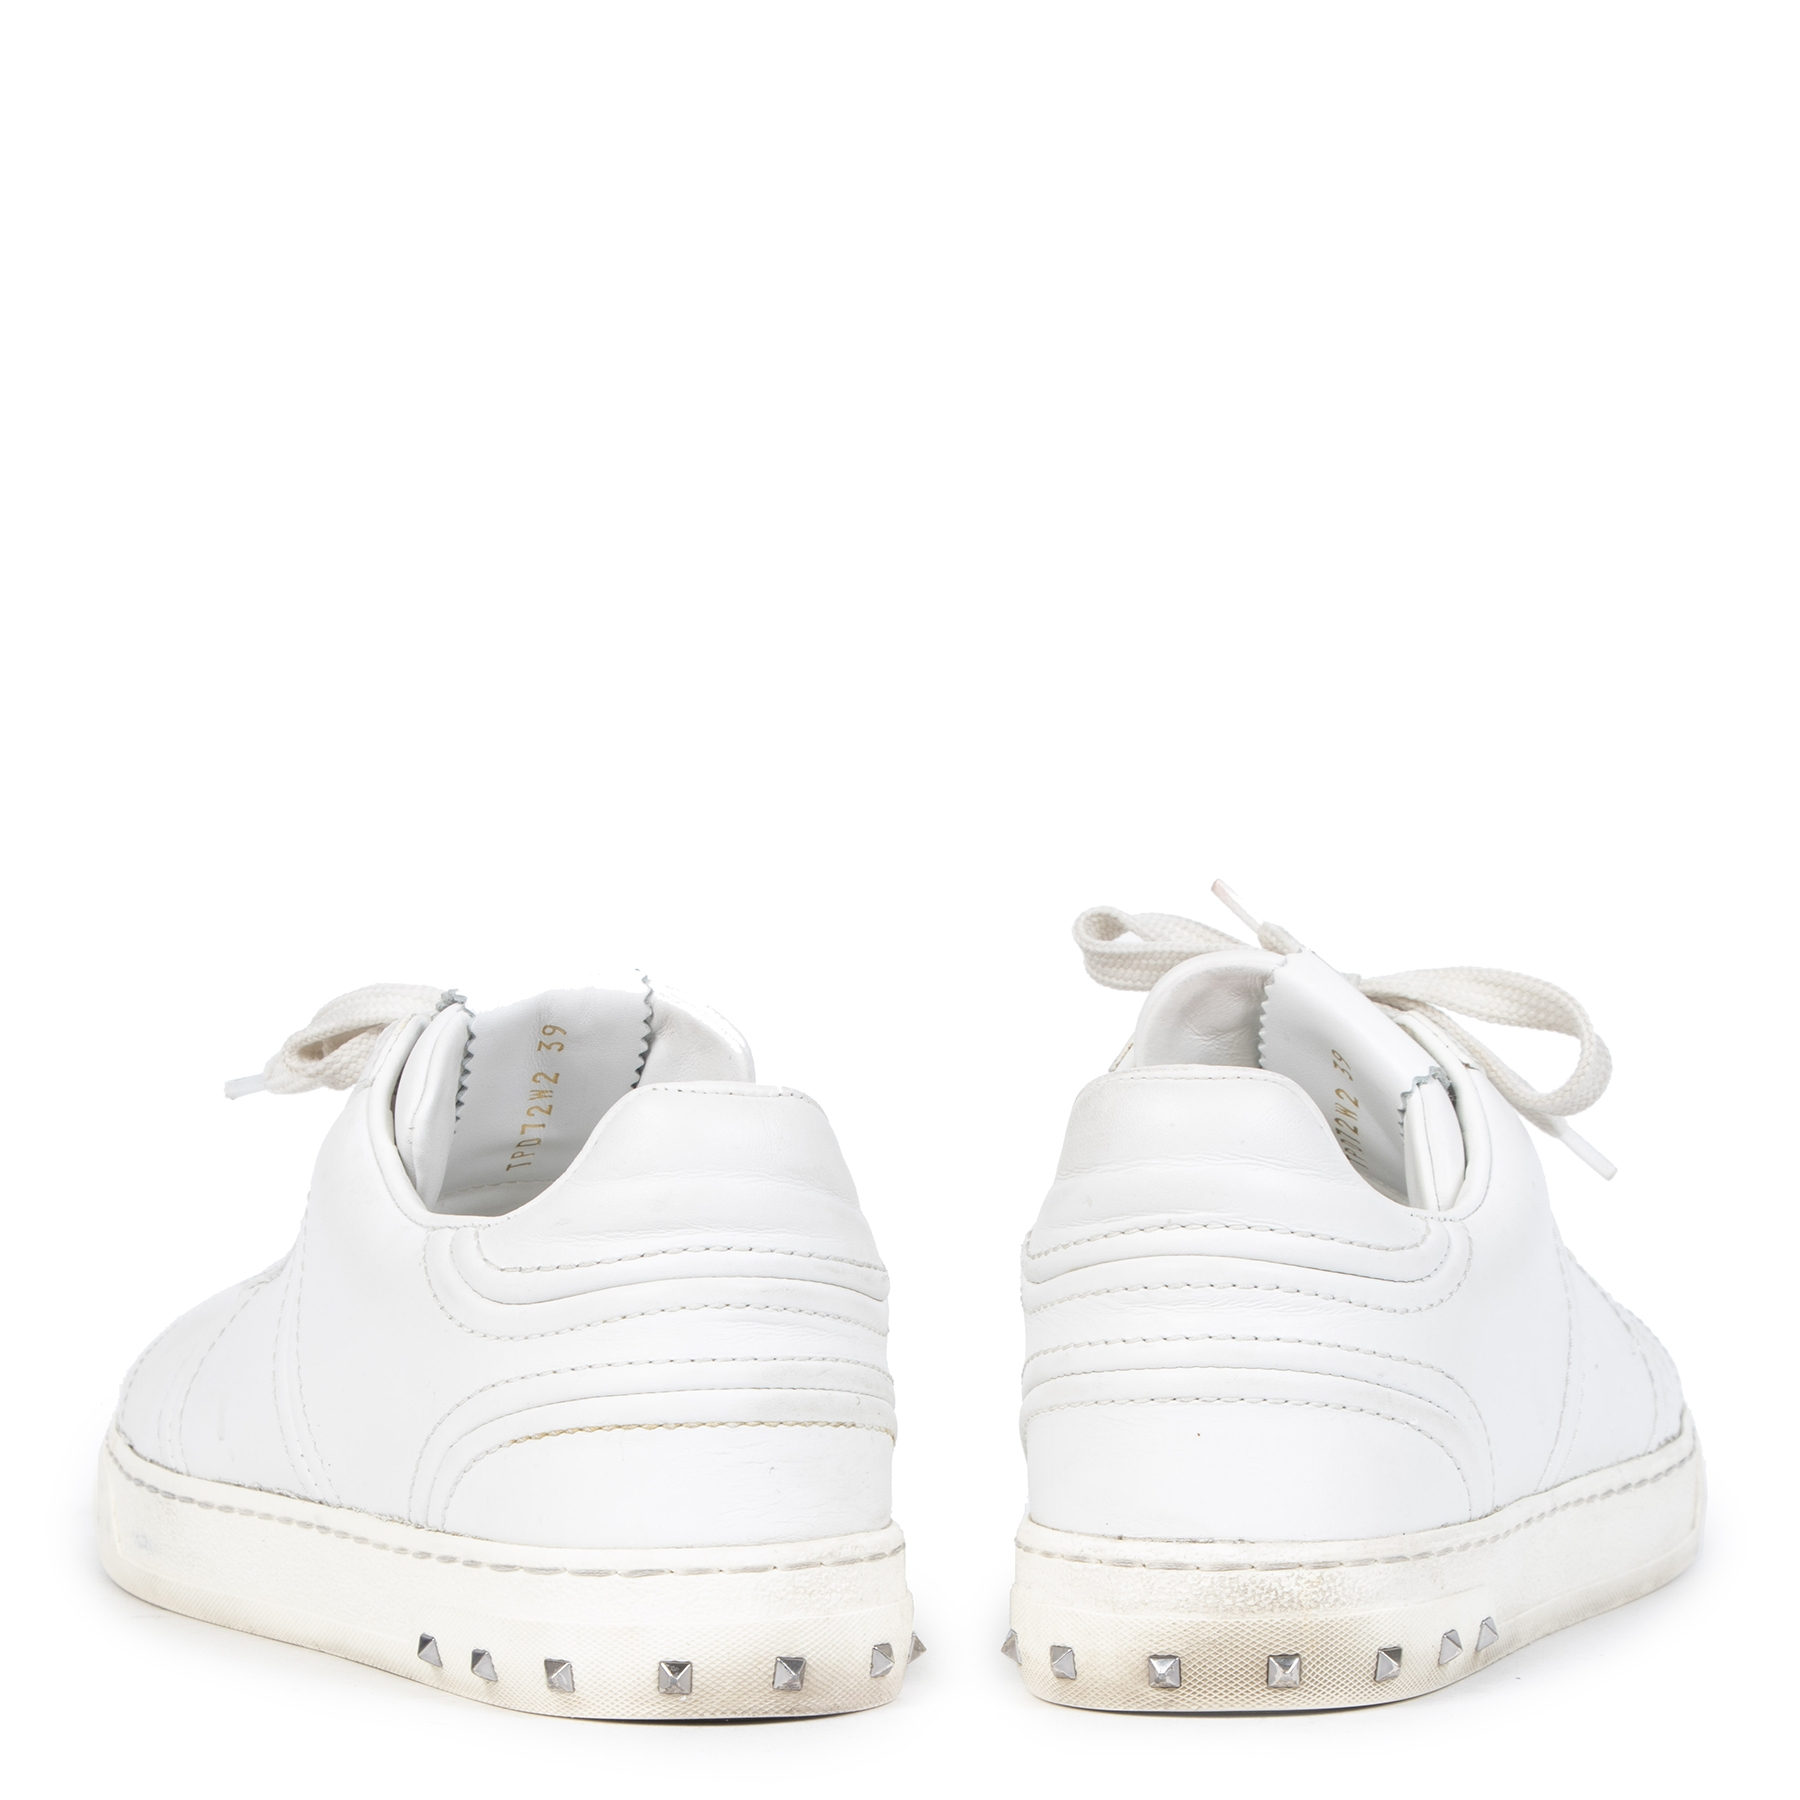 Authentieke tweedehands vintage Valentino White Fly Crew Lace-up Sneakers - Size 39 koop online webshop LabelLOV